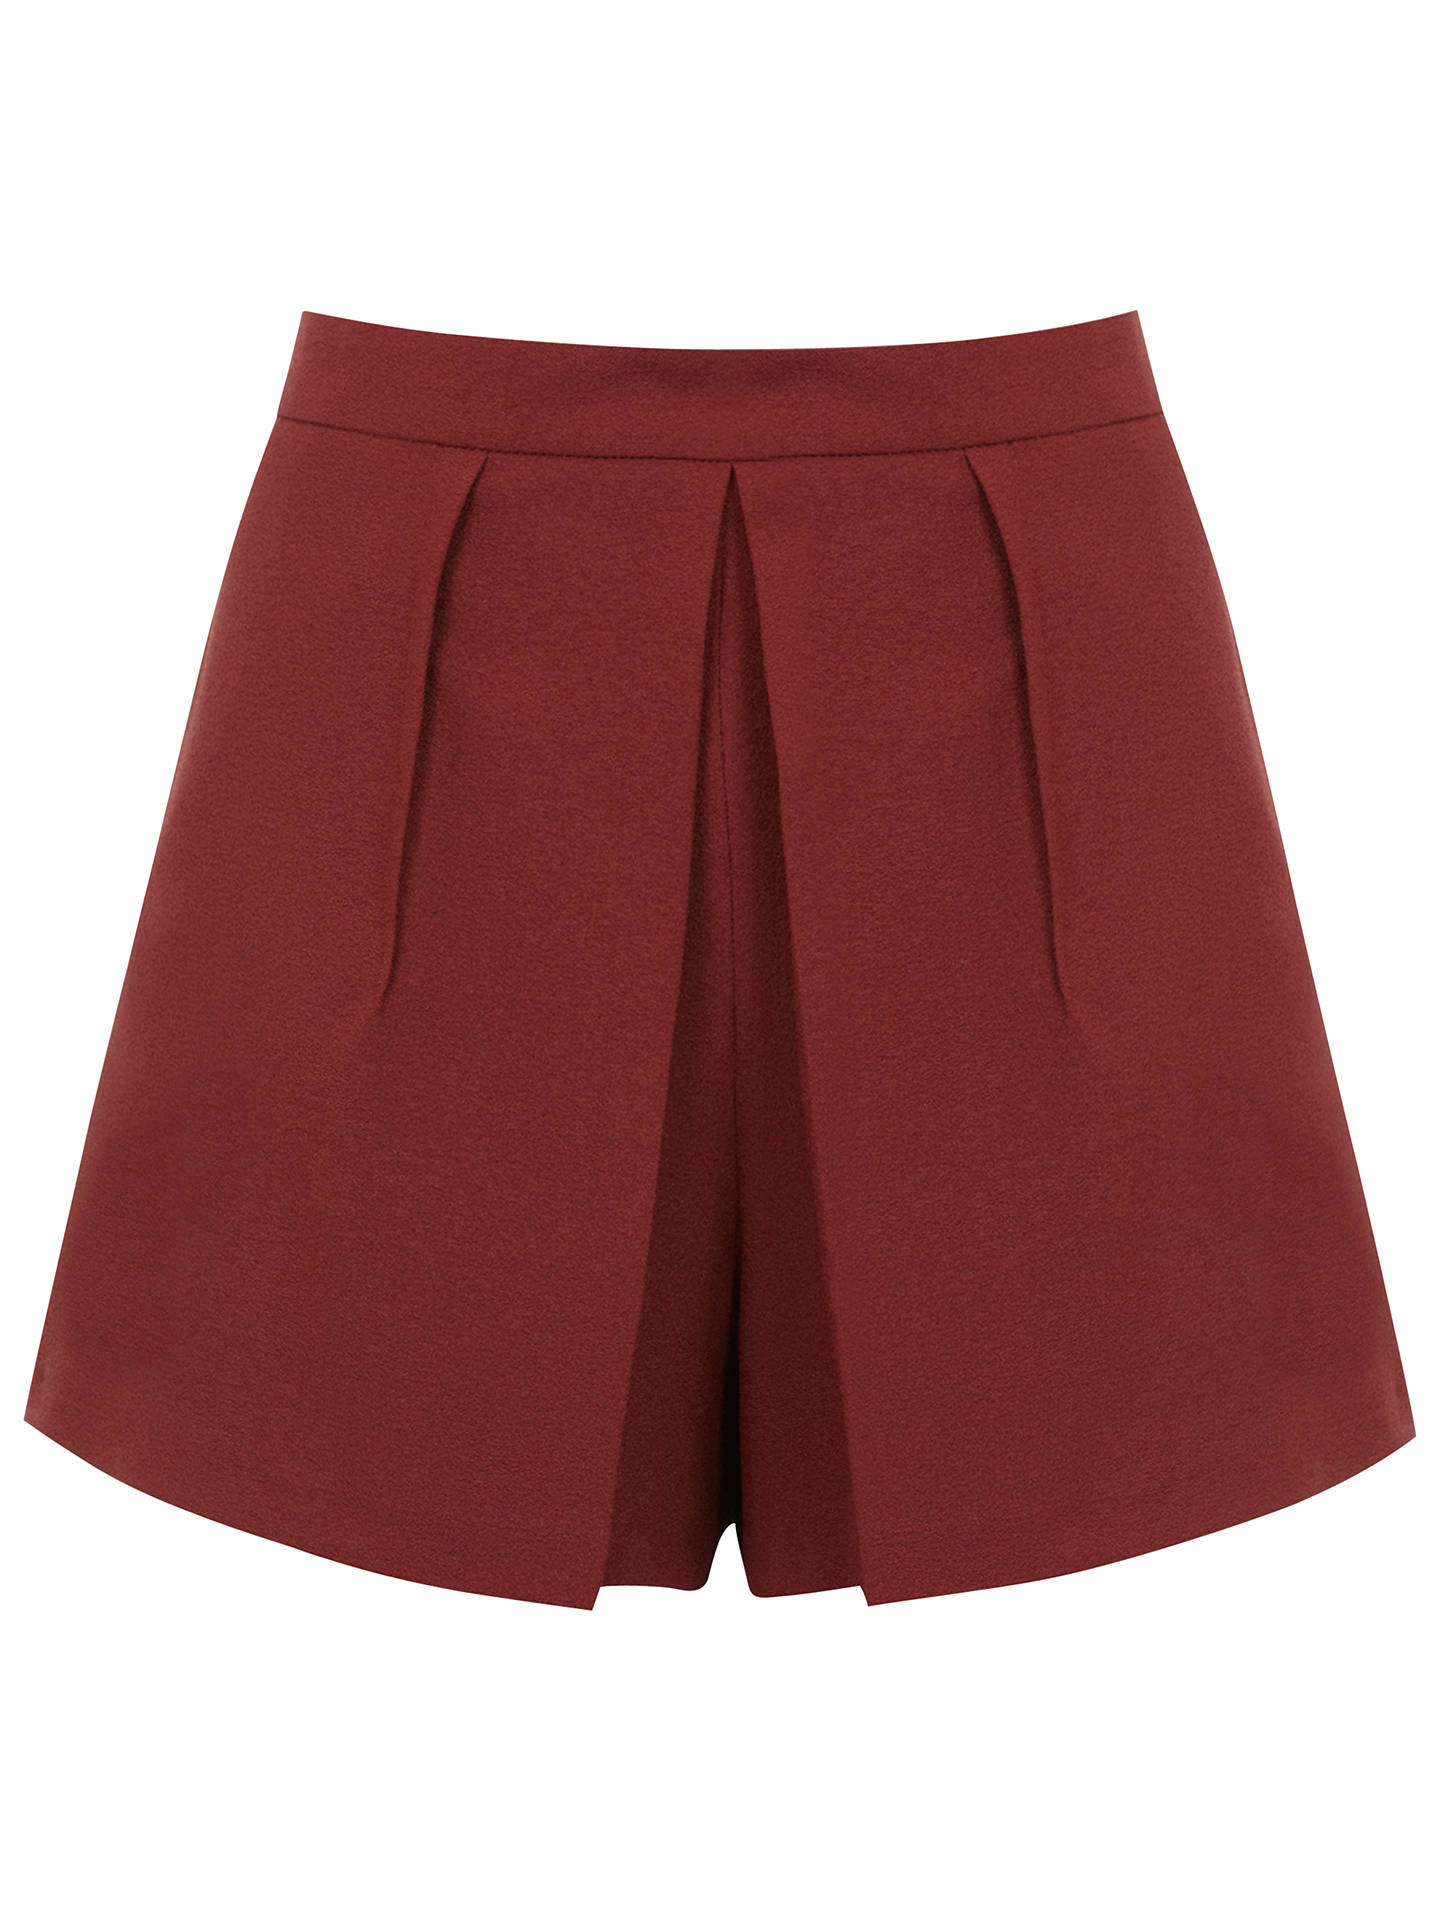 Buy Miss Selfridge Crepe Fold Skort, Rust, 6 Online at johnlewis.com